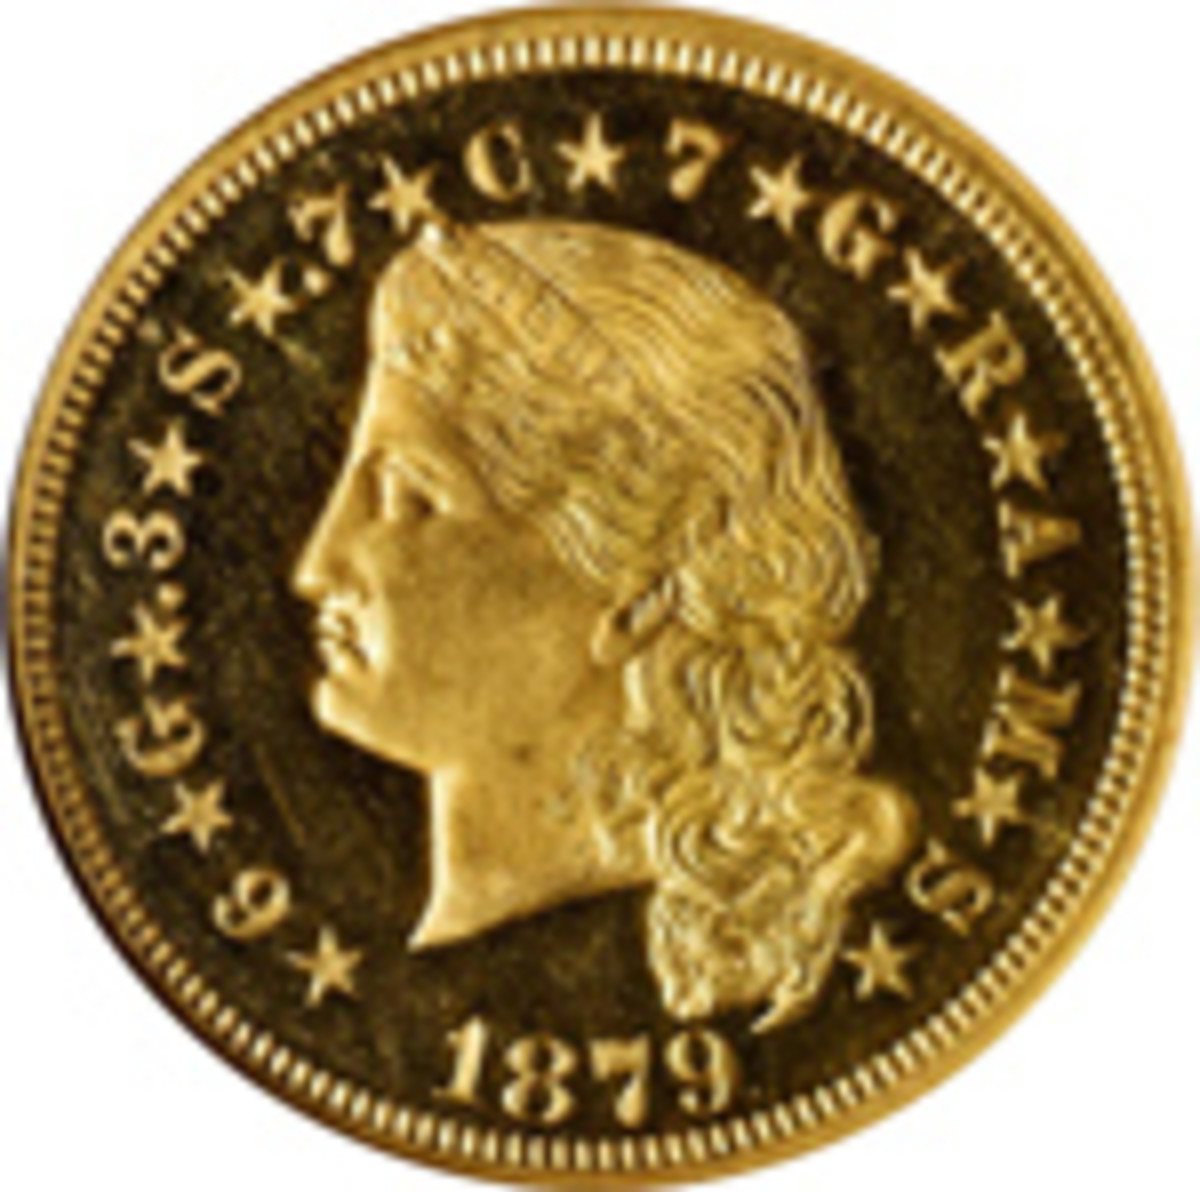 Lot 1137:  Gold was popular among bidders, which was especially true when lot 1137, a Proof-65 Ultra Cameo (NGC) 1879 Flowing Hair Stella, was bid all the way up to $240,000. (Image courtesy of Stack's Bowers)